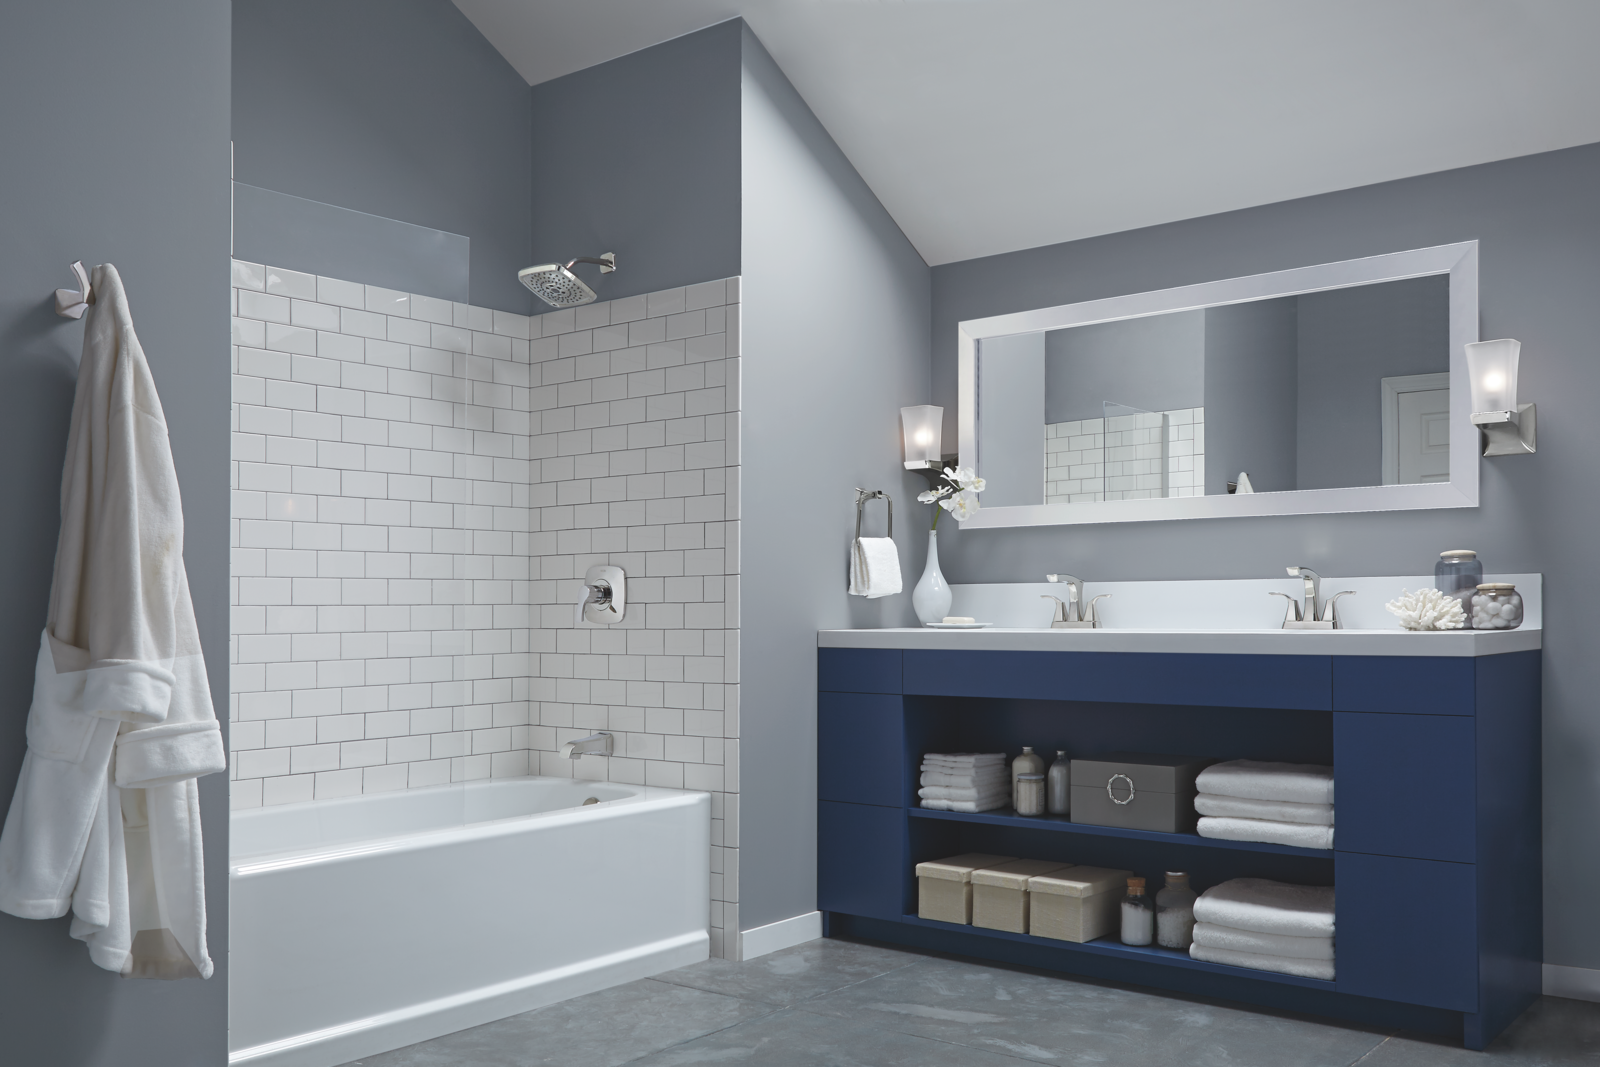 Photo 2 of 7 in 7 Bathroom Renovation Ideas to Rejuvenate Your Space